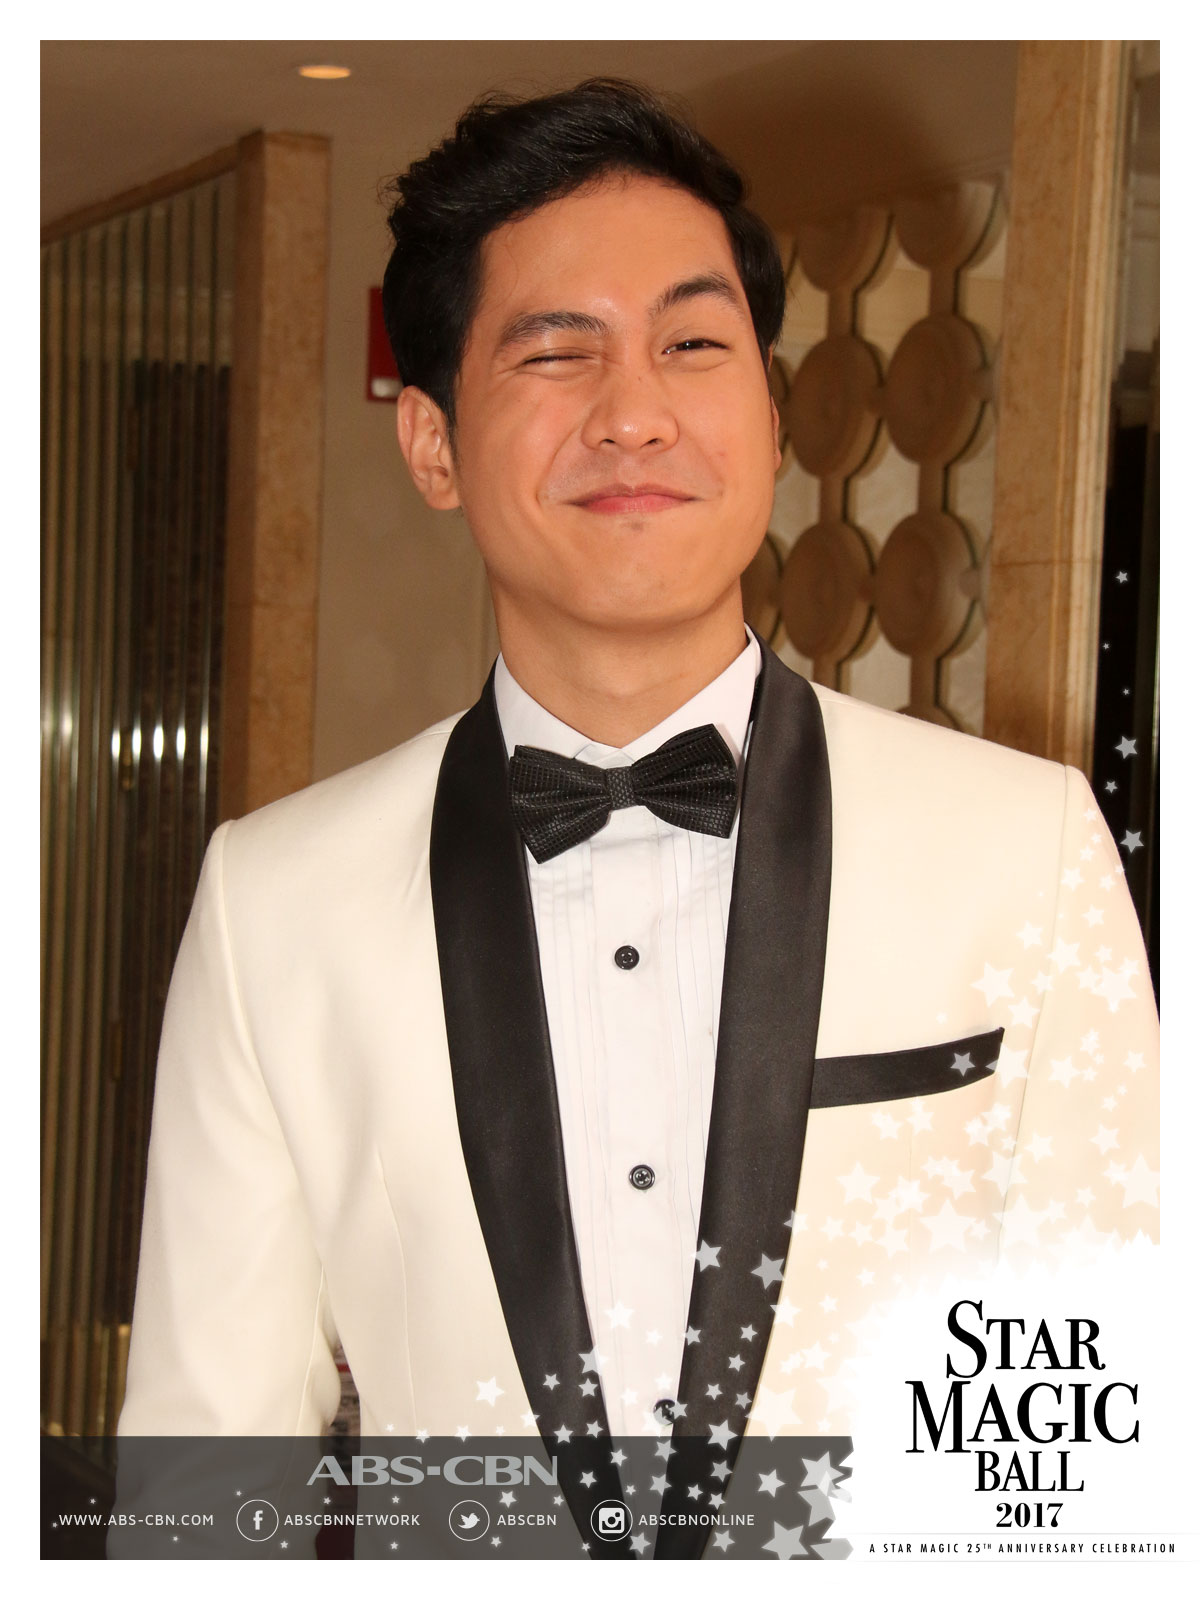 You got me at a wink: These Kapamilya actors will make you swoon with their winks (Star Magic Ball 2017 Edition)